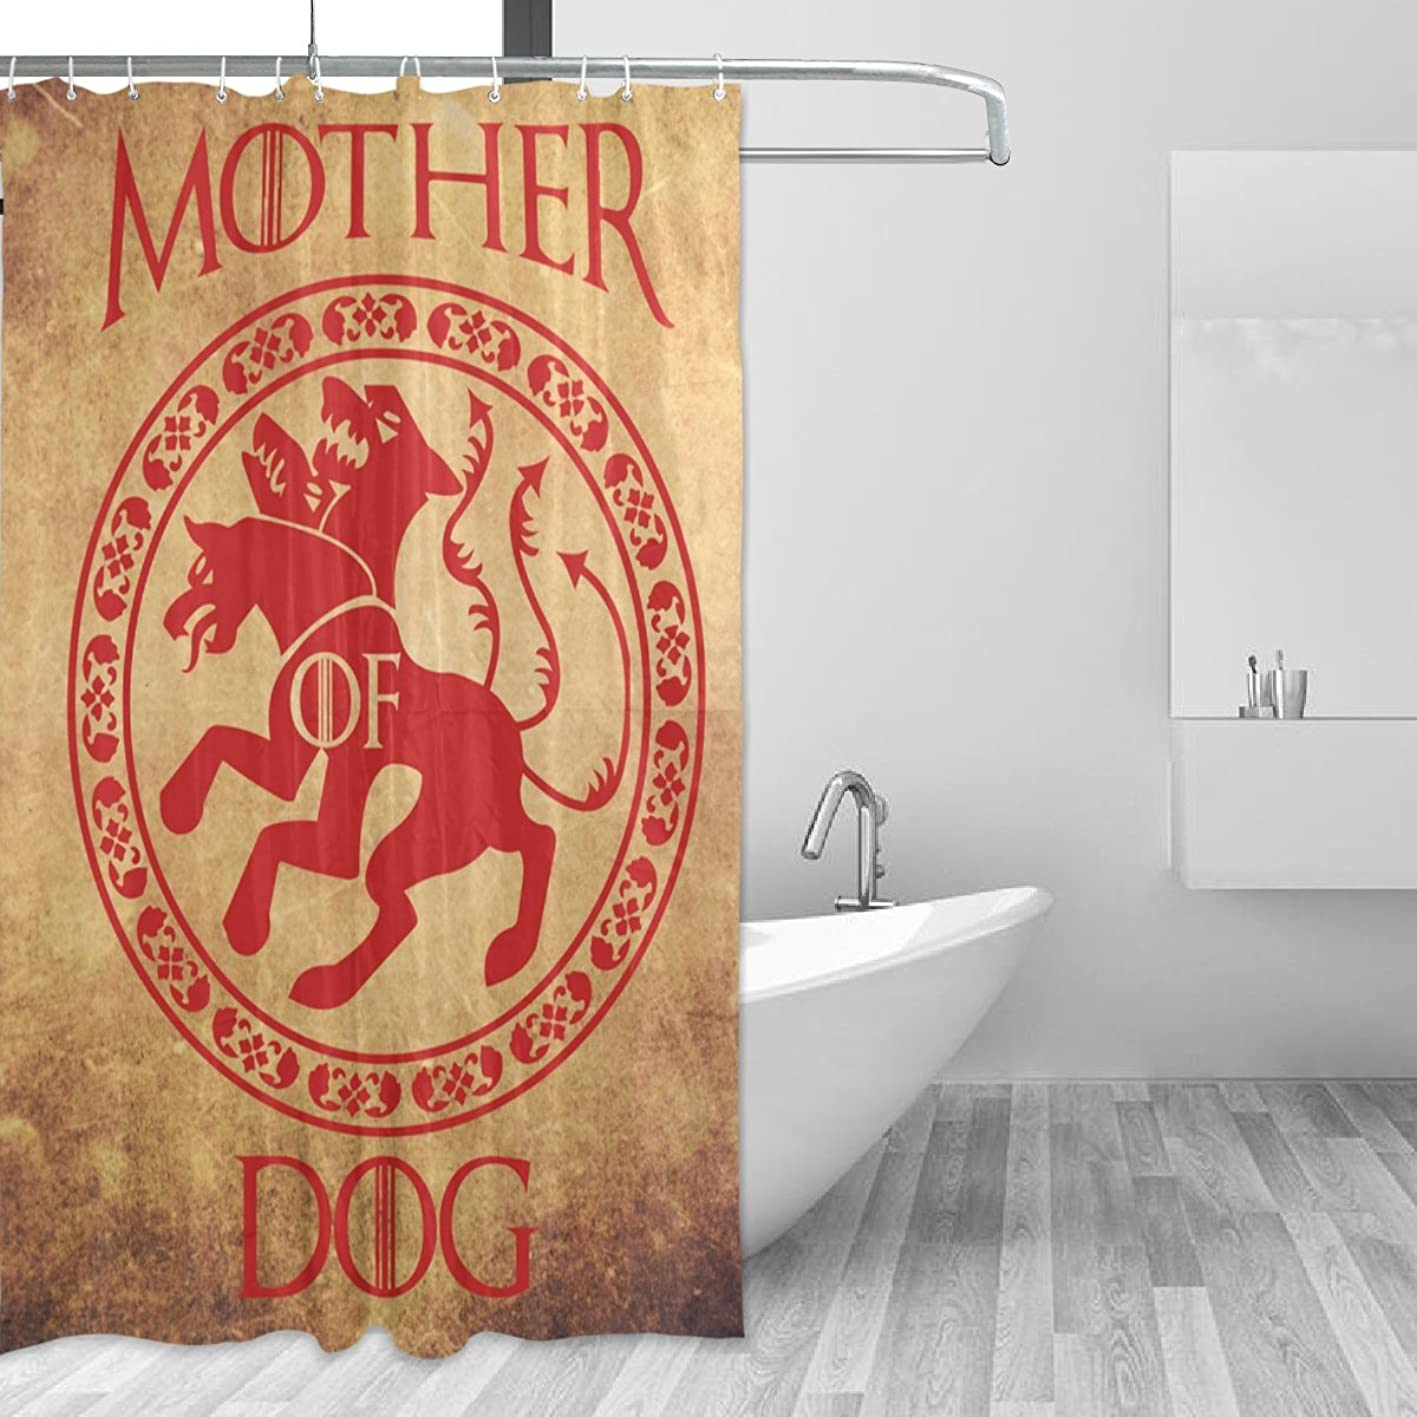 Mother Of Dog Waterproof Polyester Bathroom Shower Curtain Set for Home Decor with Hooks,60W X 72L Inches hxgusrxmhnk627